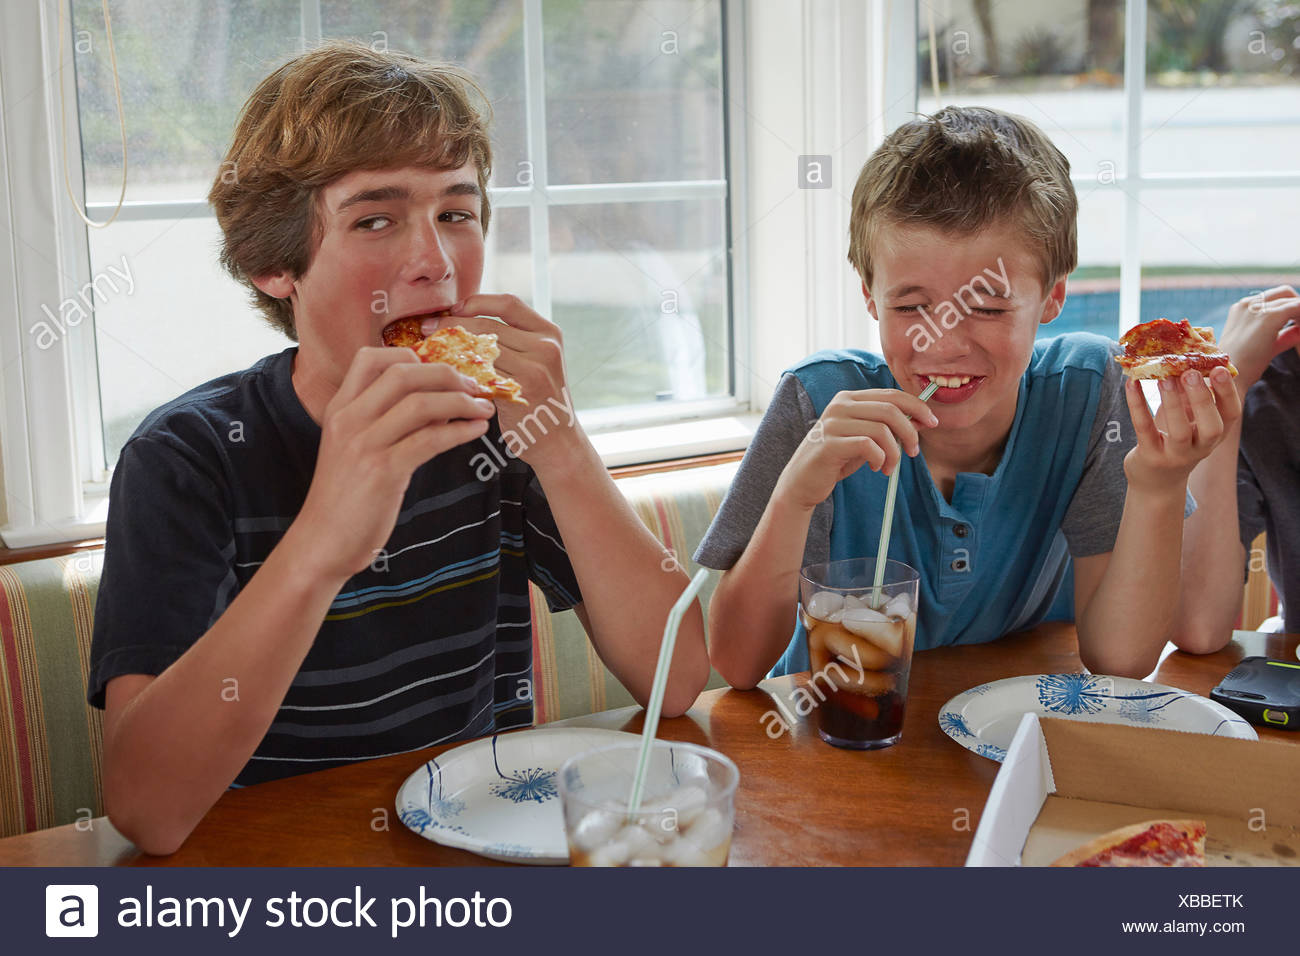 Boys eating pizza - Stock Image